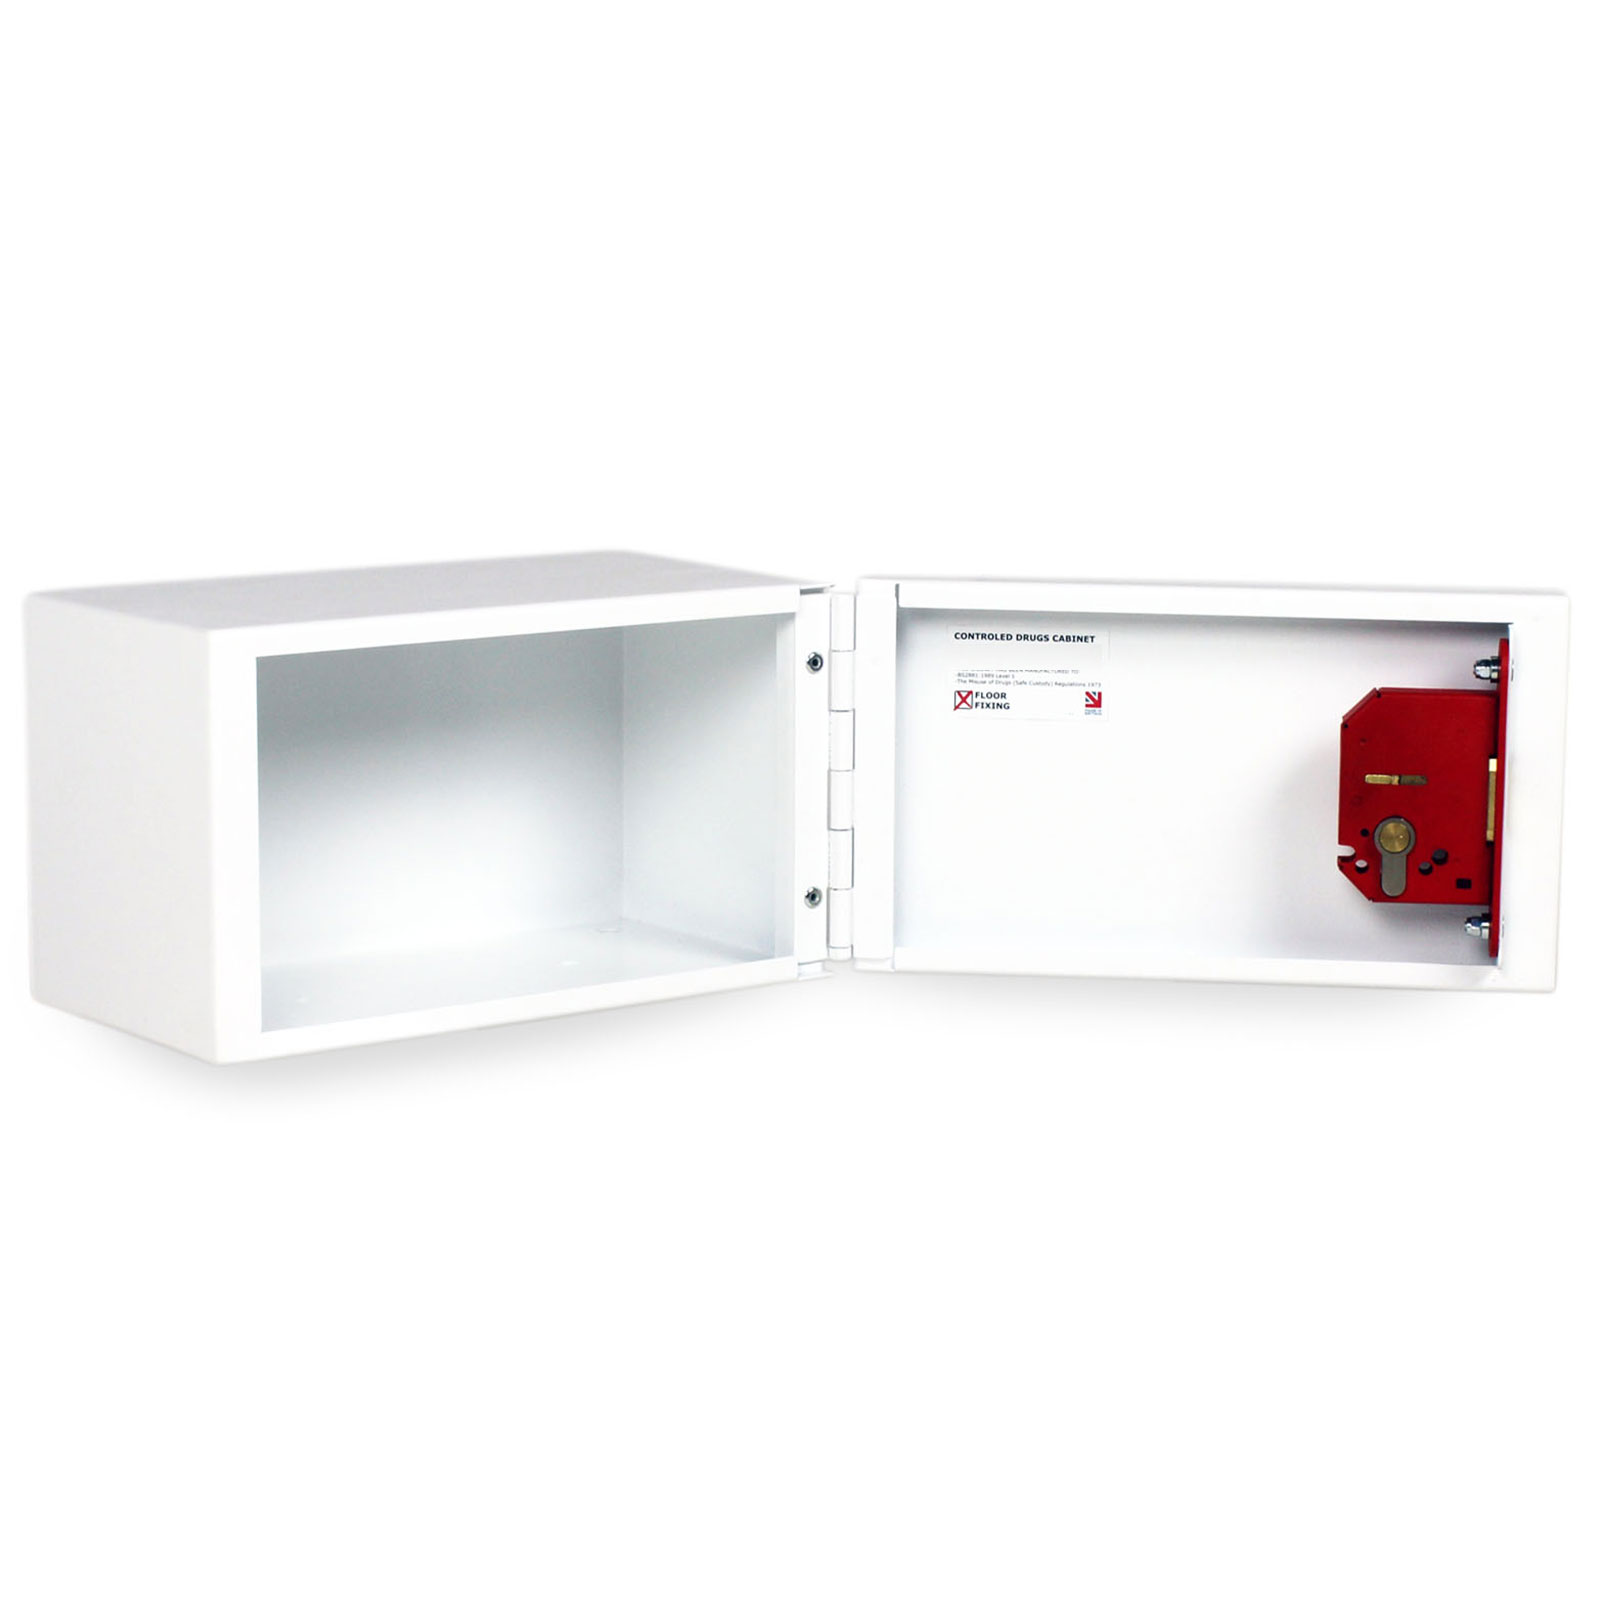 FPD 12369 Controlled Drugs Cabinet 8 Litre door open